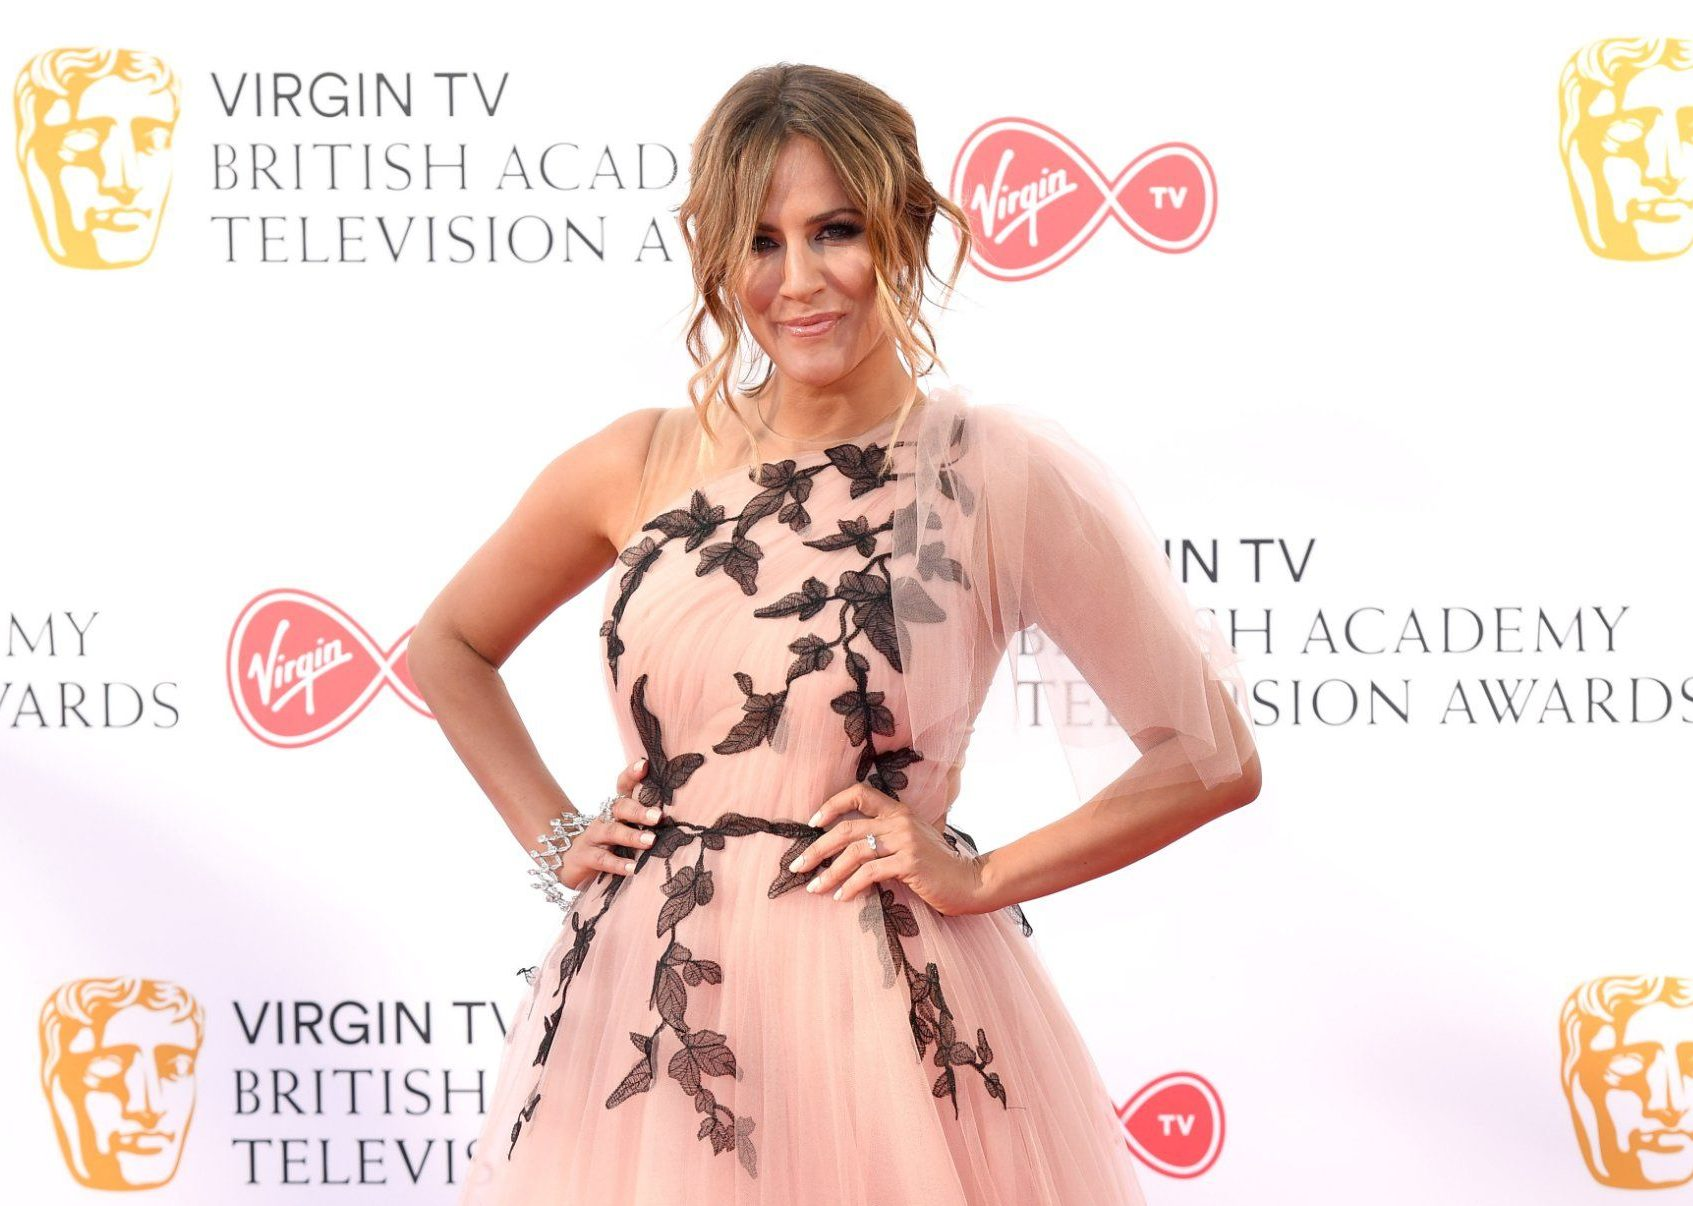 LONDON, ENGLAND - MAY 13: Caroline Flack attends the Virgin TV British Academy Television Awards at The Royal Festival Hall on May 13, 2018 in London, England. (Photo by Karwai Tang/WireImage)